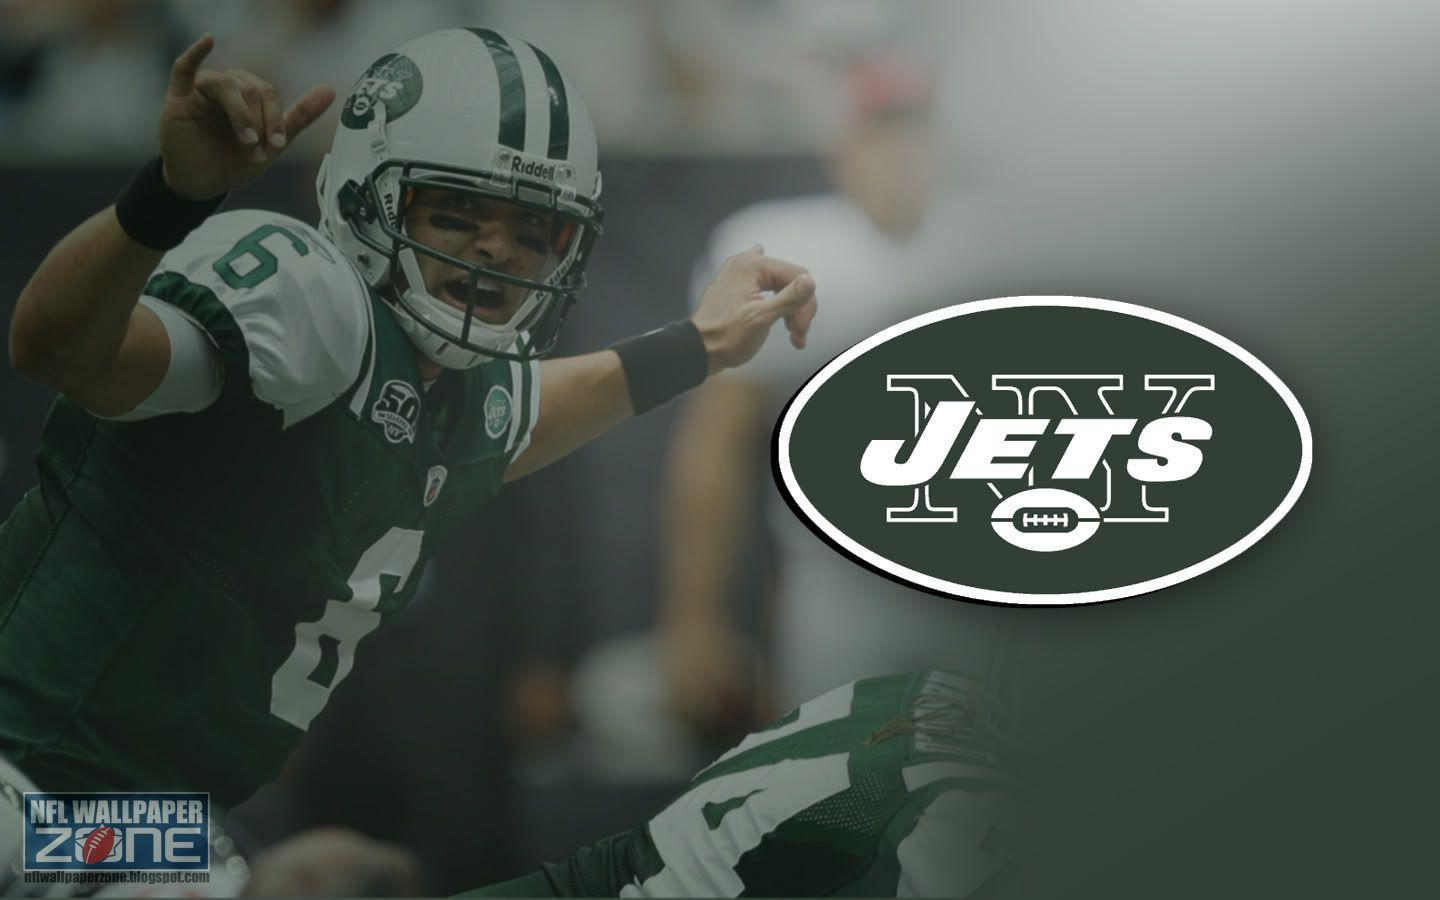 NFL Wallpapers Zone: NY Jets Wallpapers